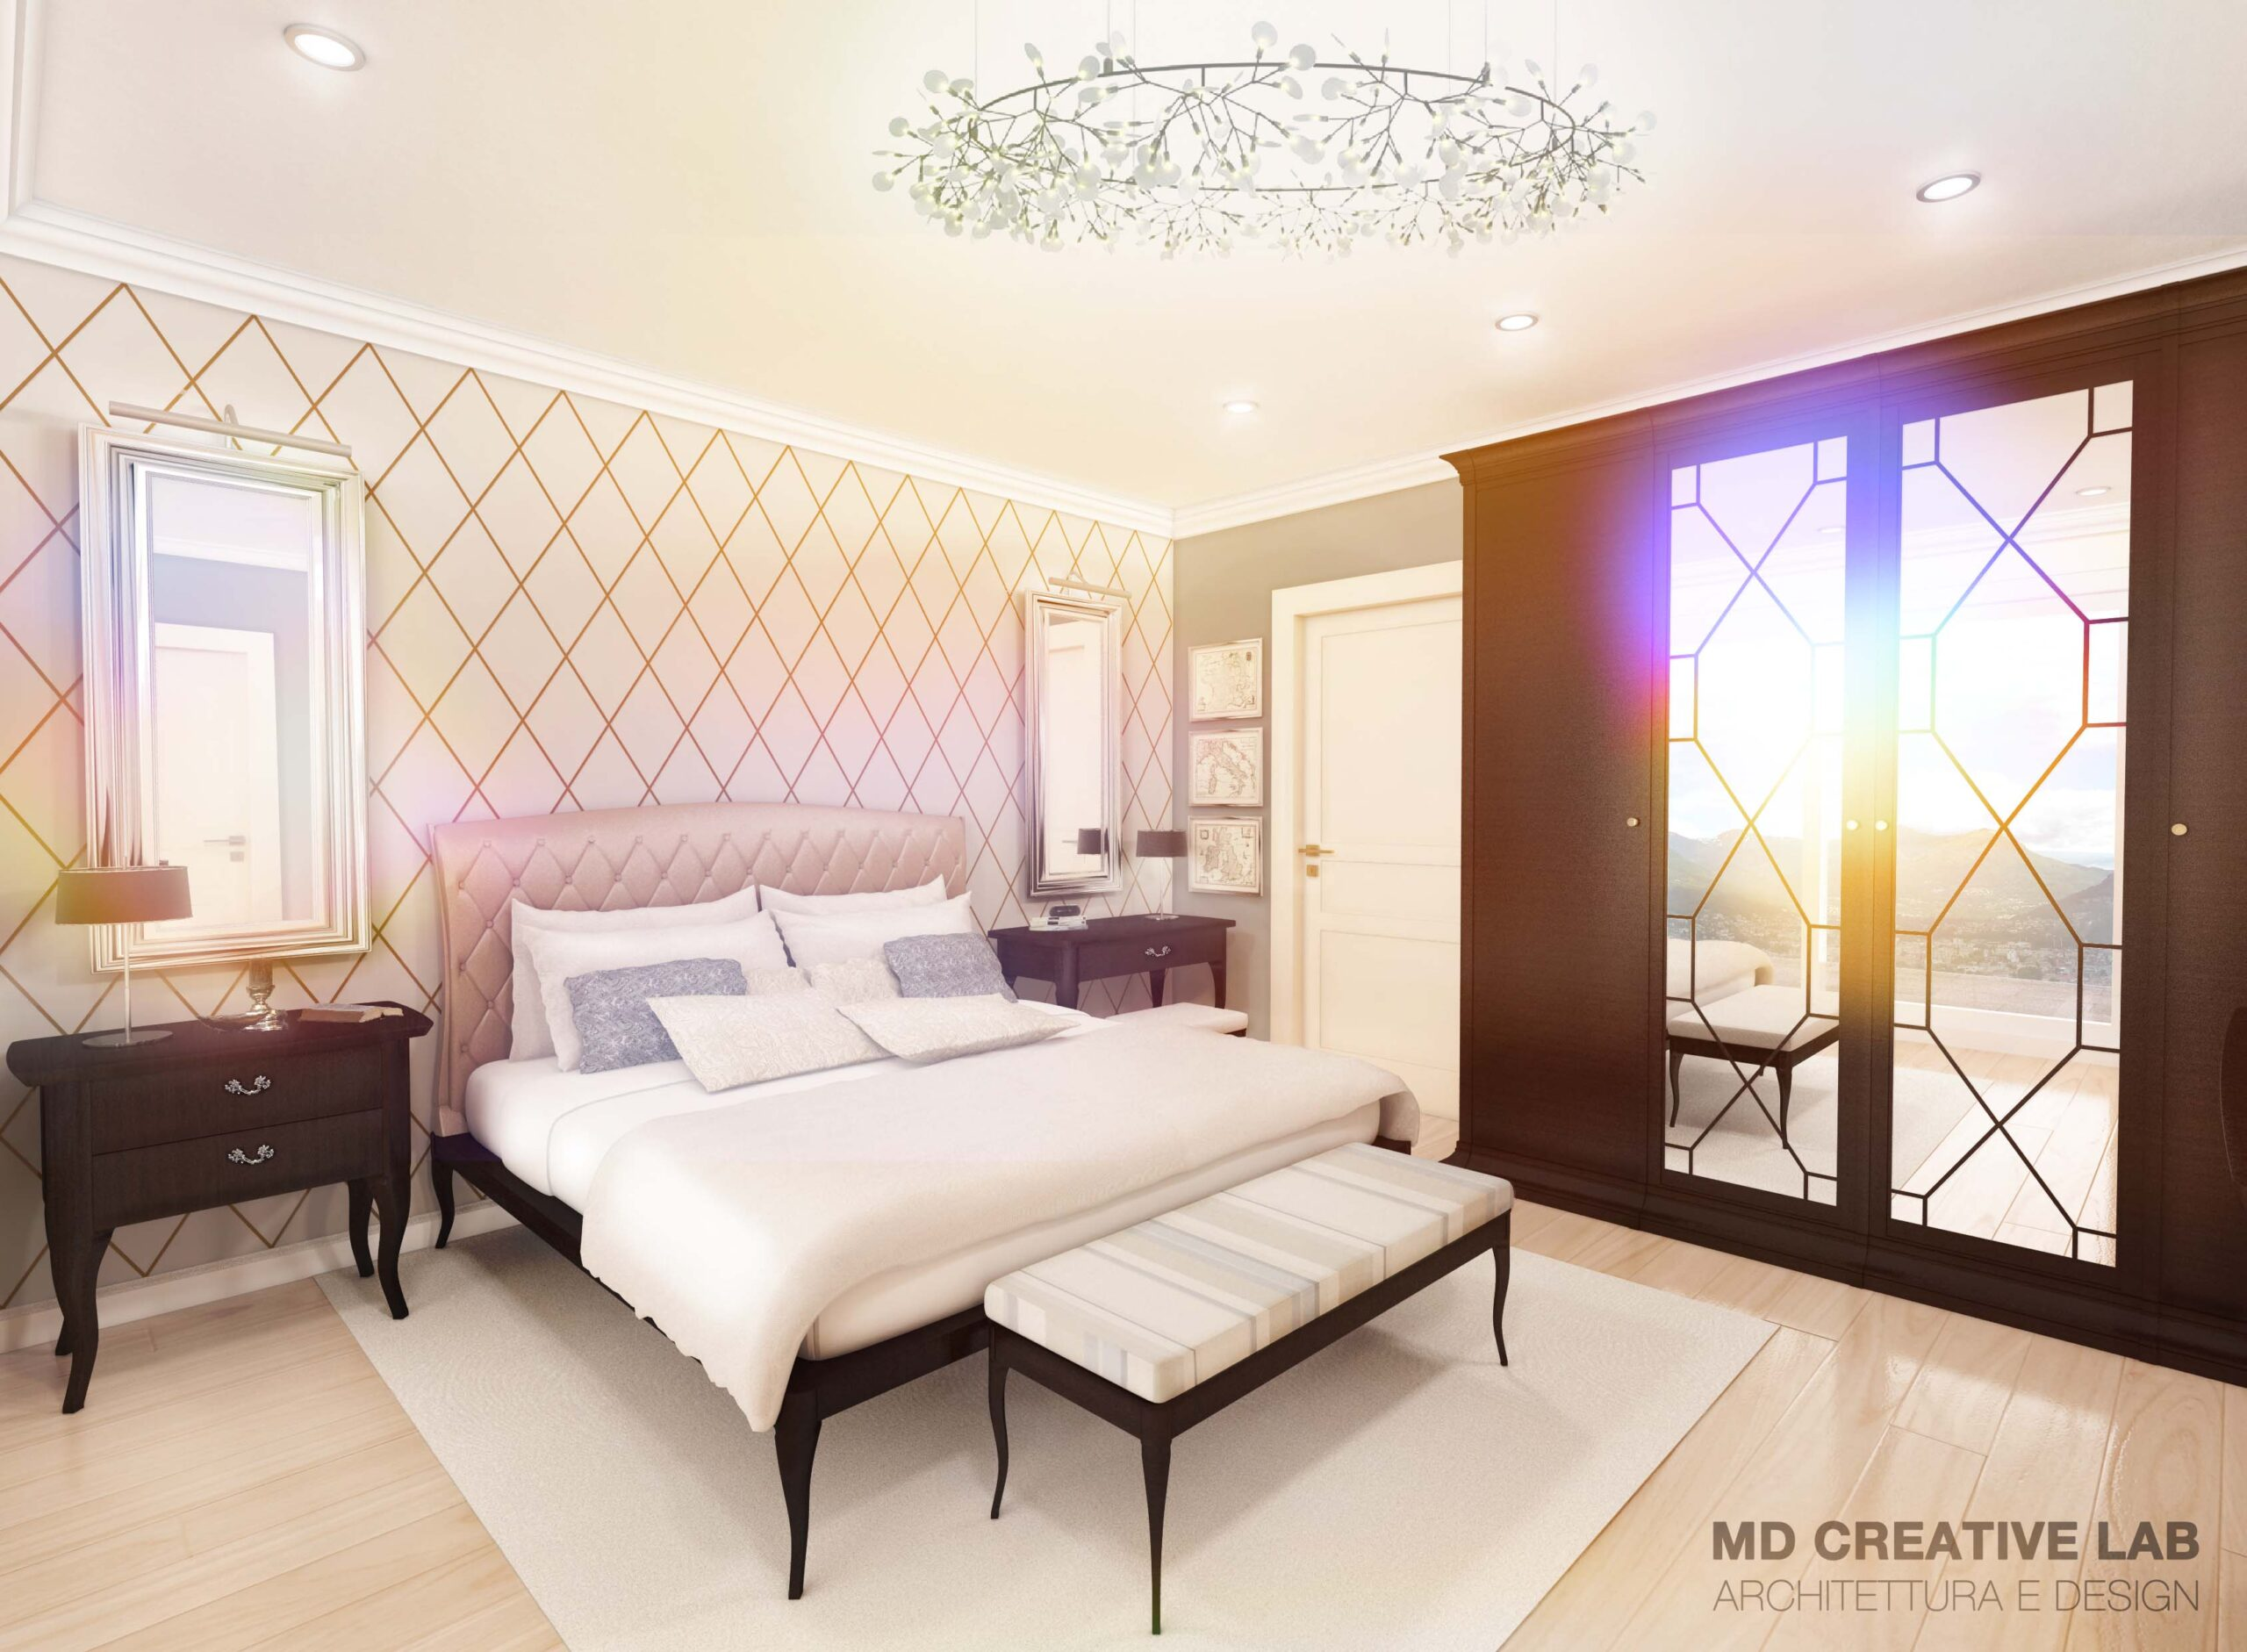 MD Creative Lab Lugano Bedroom Interior Design Lugano Paradiso Emerald Living Residence scaled